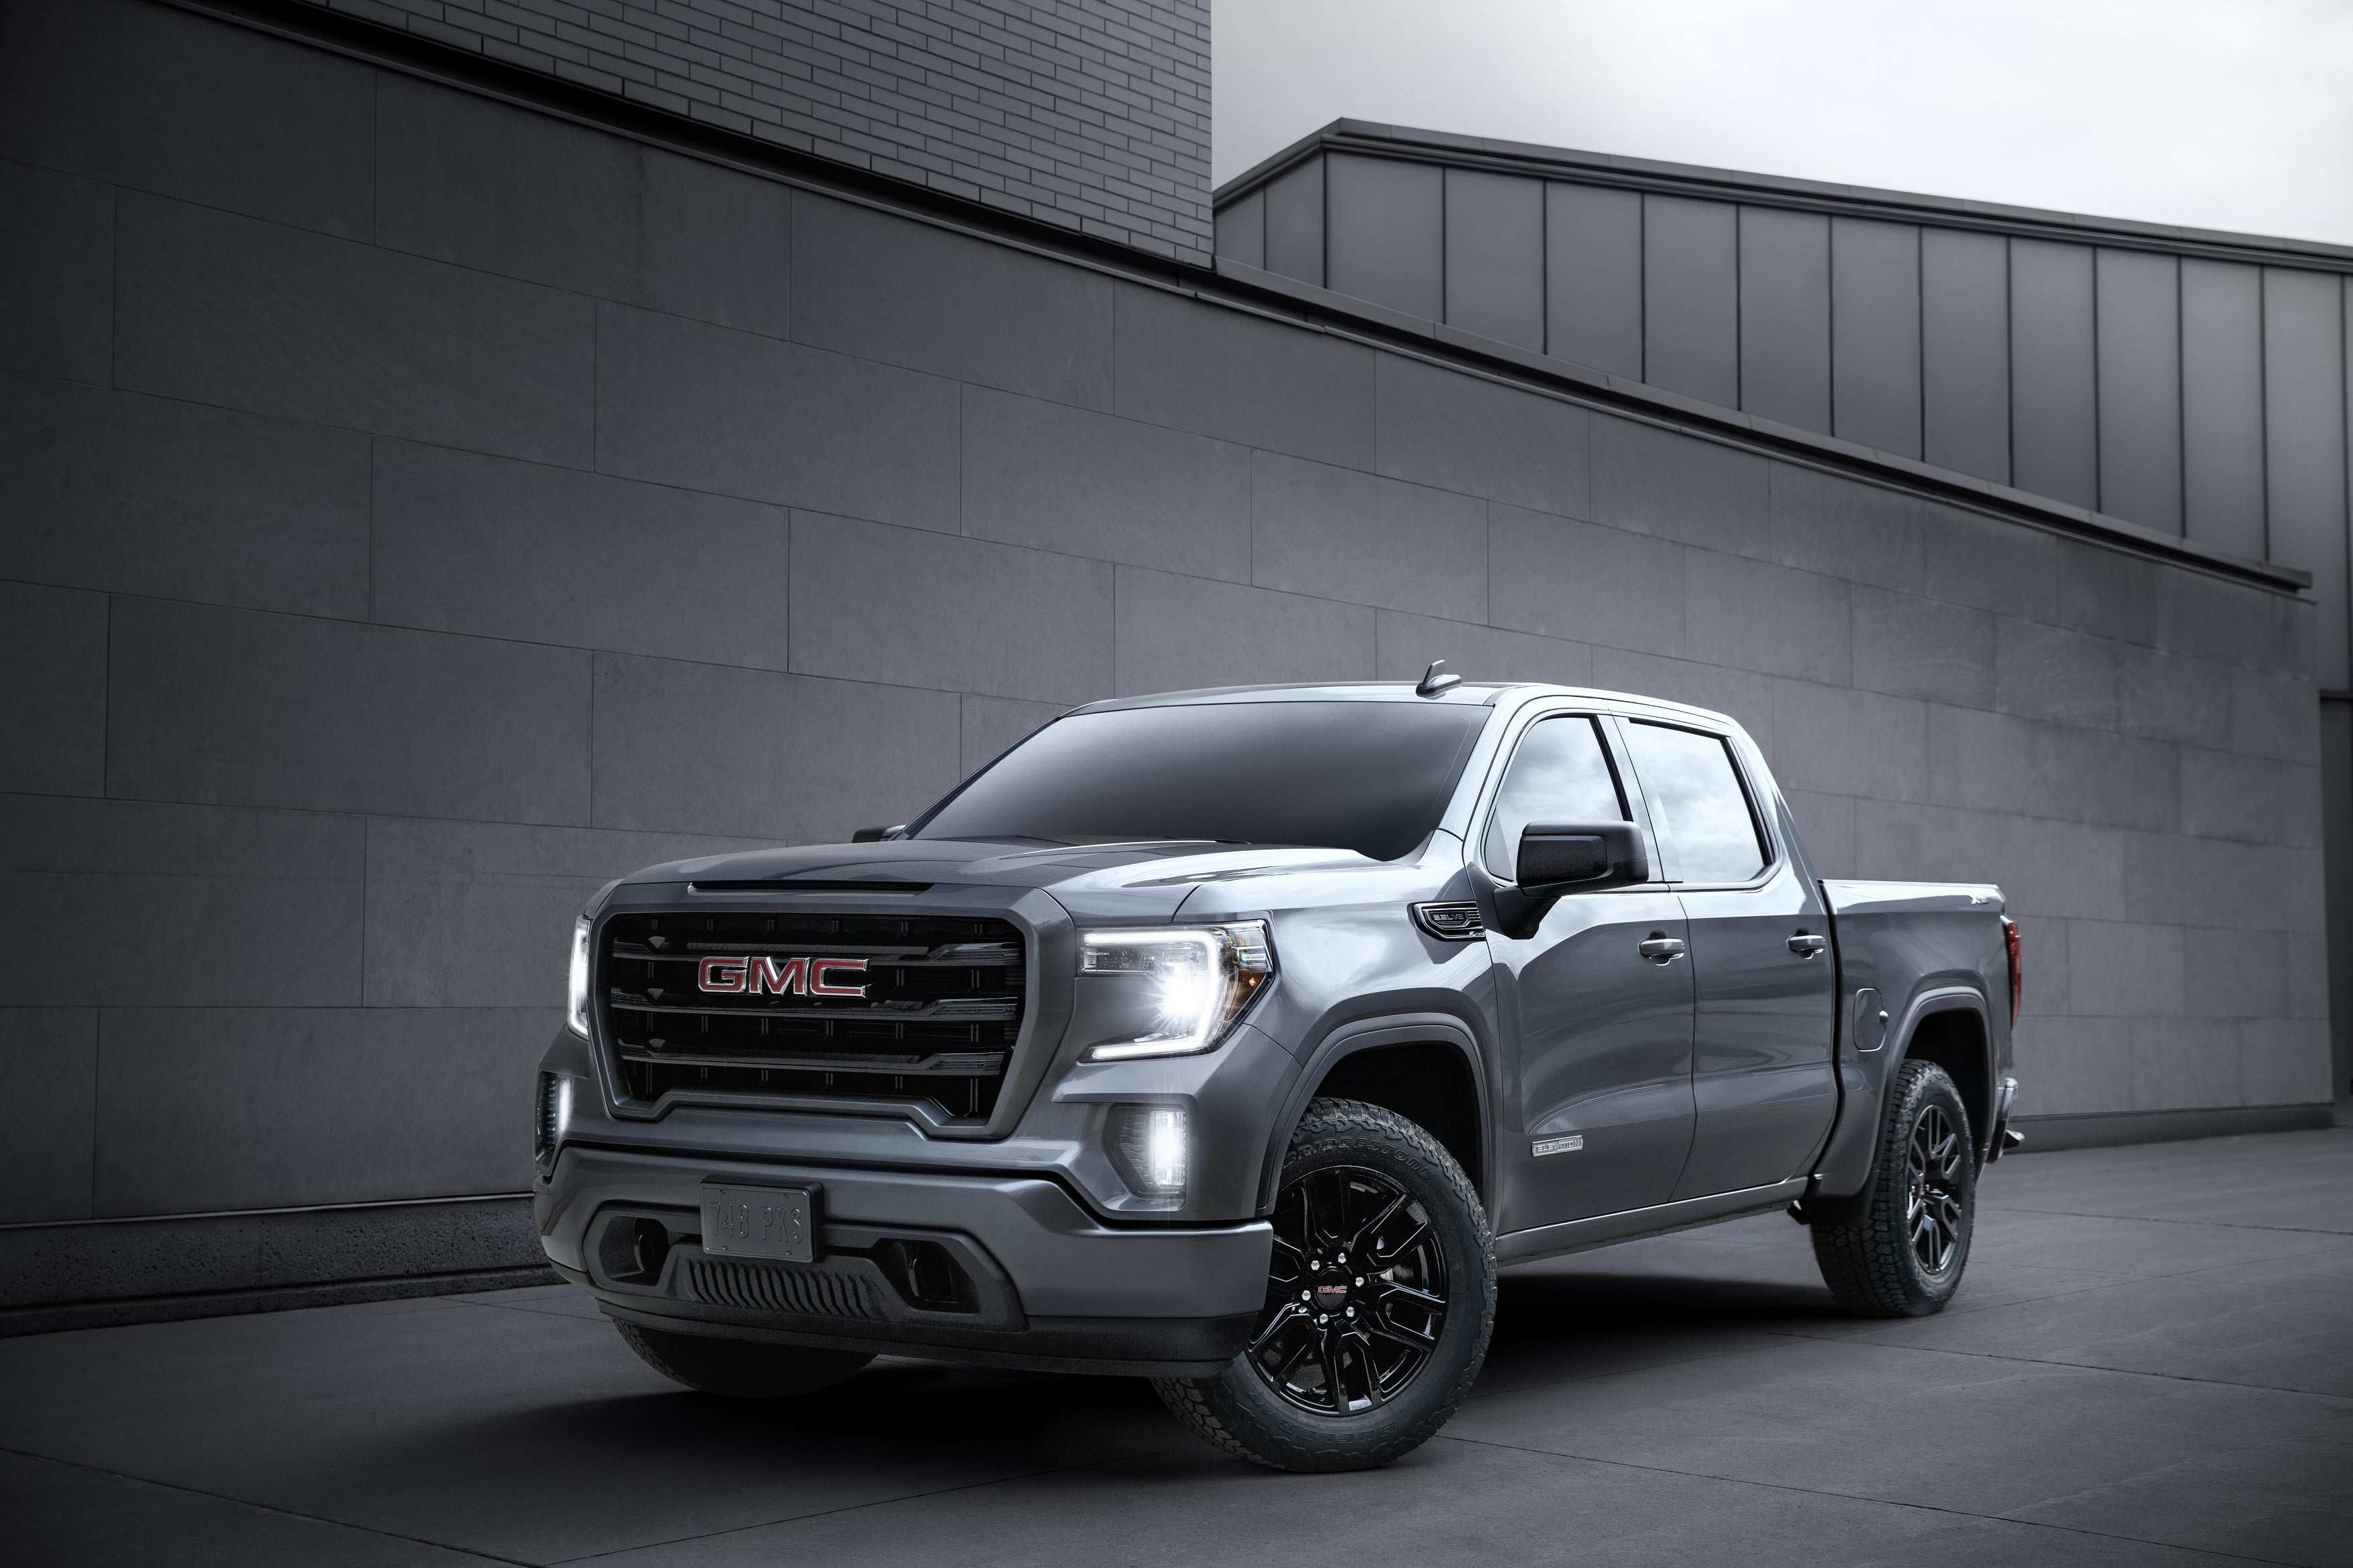 13 Great Gmc Pickup 2020 Prices by Gmc Pickup 2020